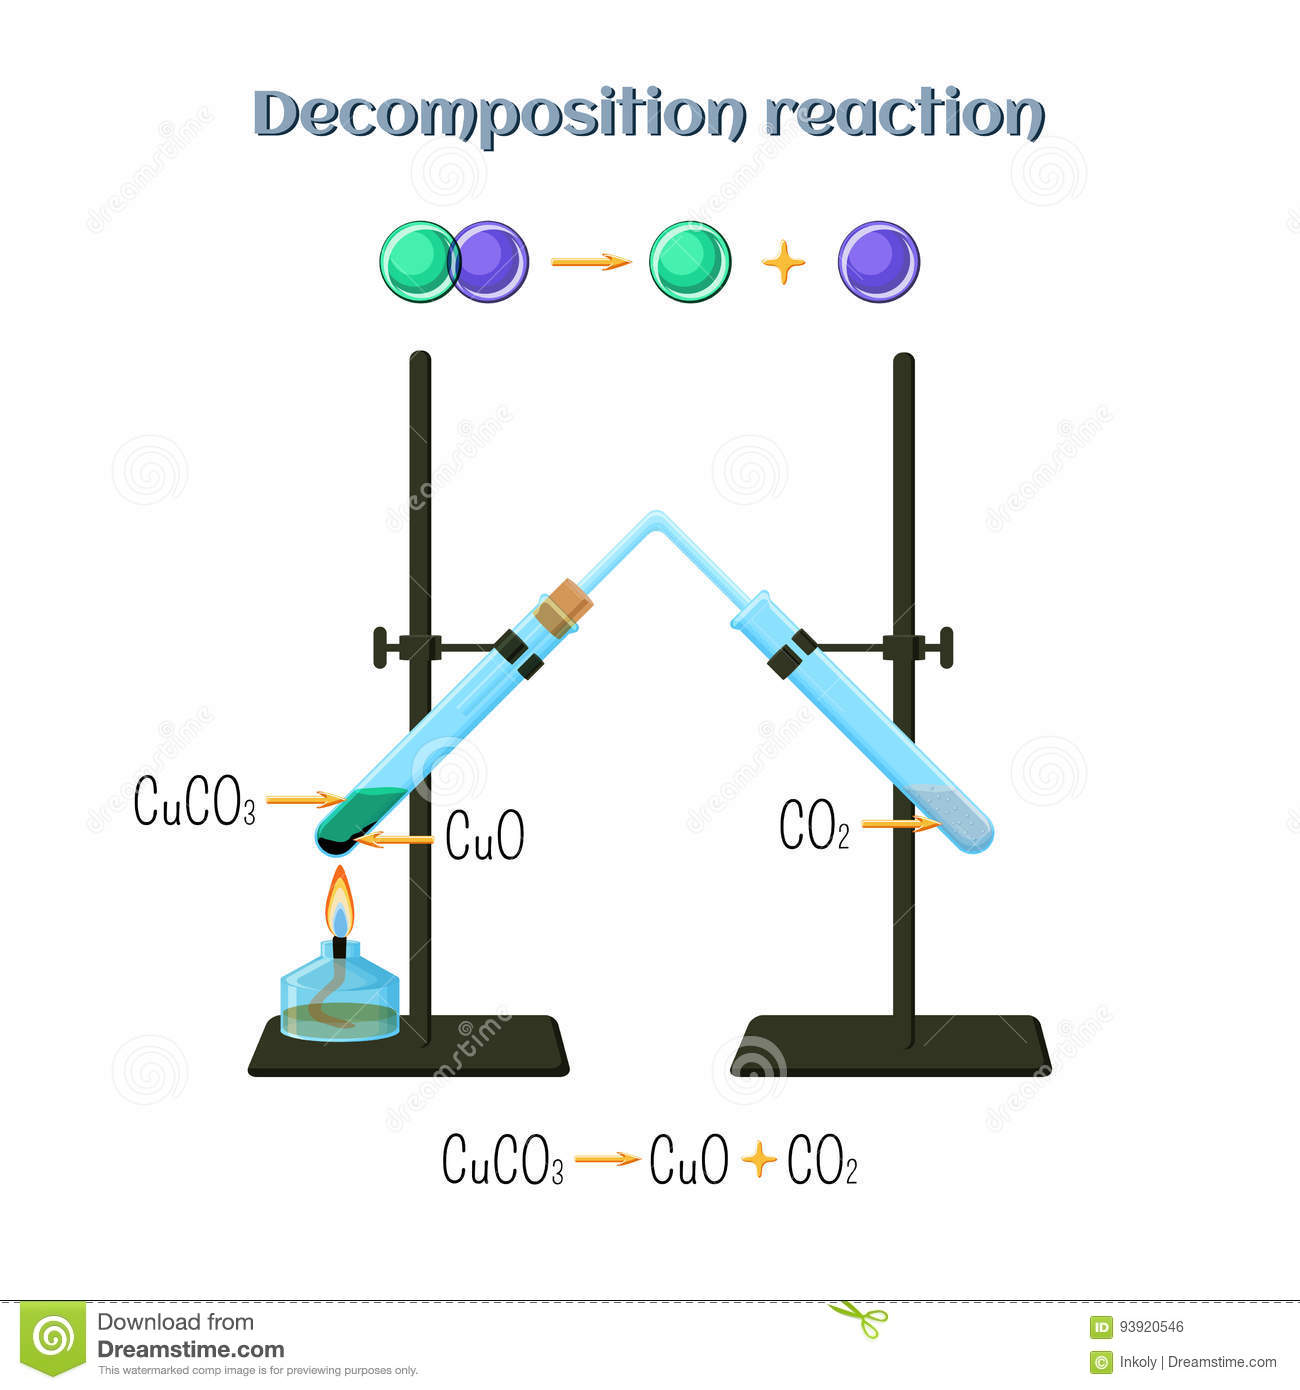 copper reactions 2018-6-10 organocopper compounds in organometallic chemistry contain carbon to copper chemical bonds organocopper chemistry is the science of organocopper compounds describing their physical properties, synthesis and reactions.